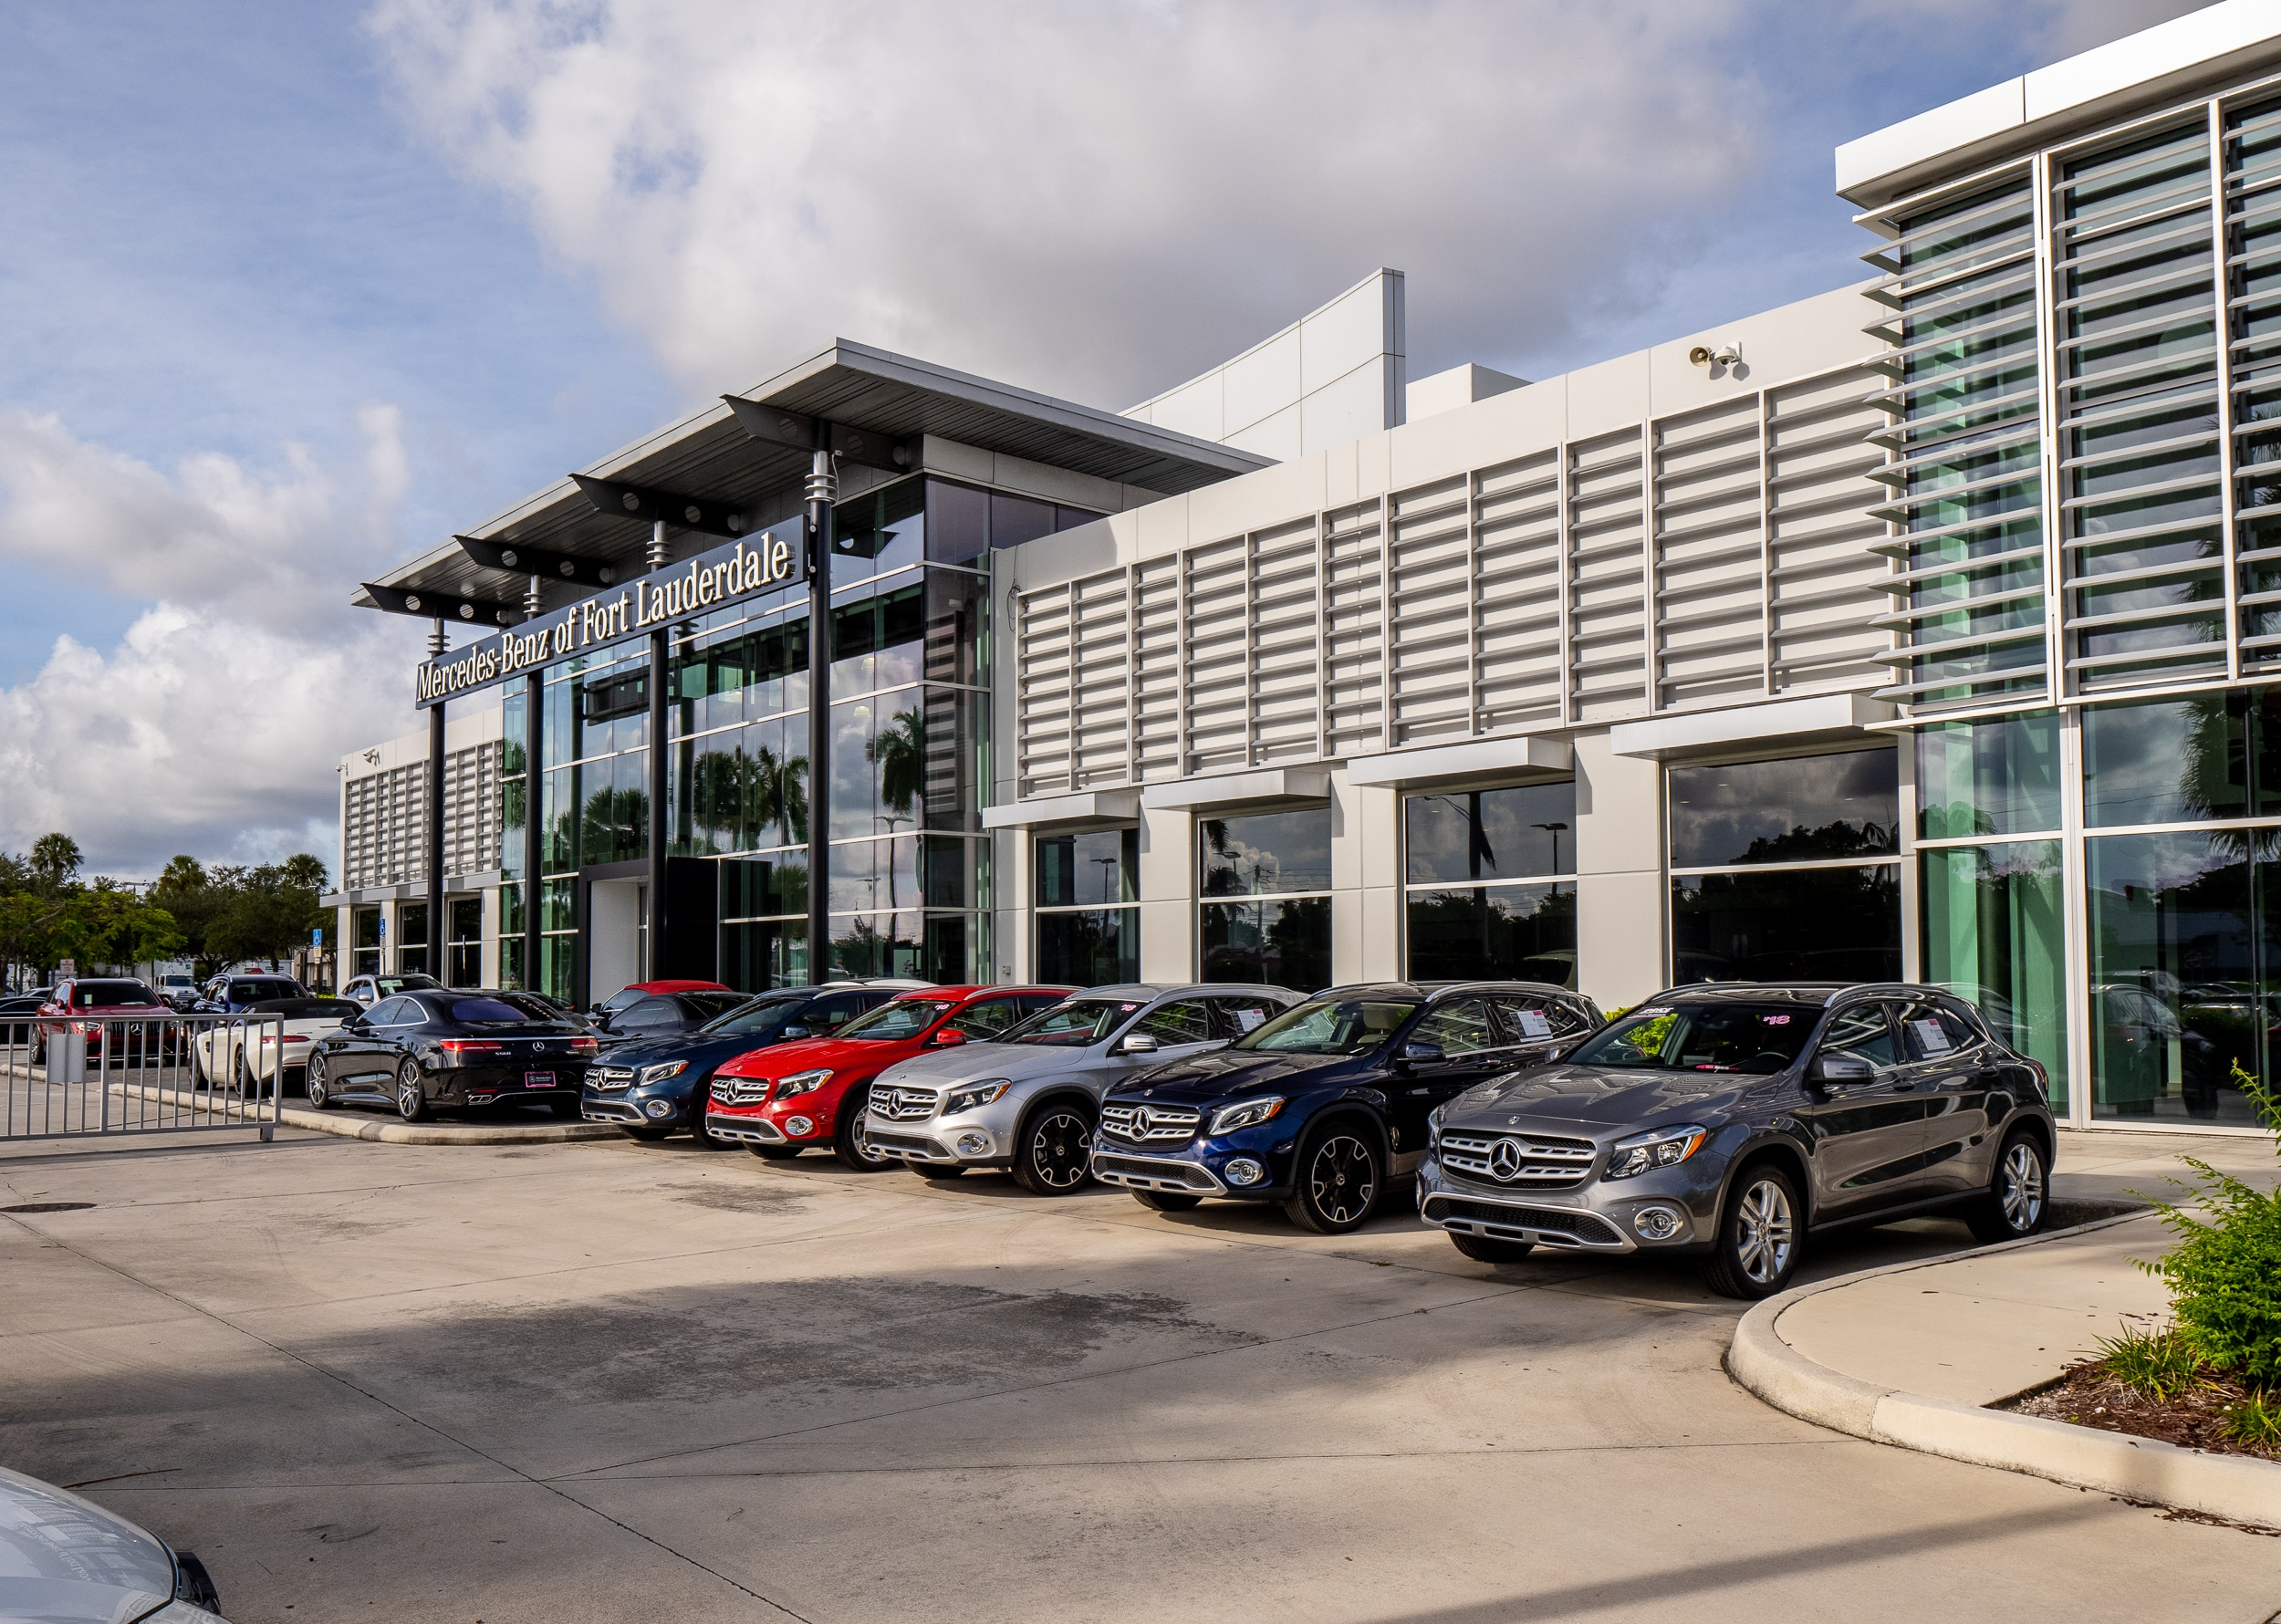 Exterior view of Mercedes-Benz of Fort Lauderdale during the day